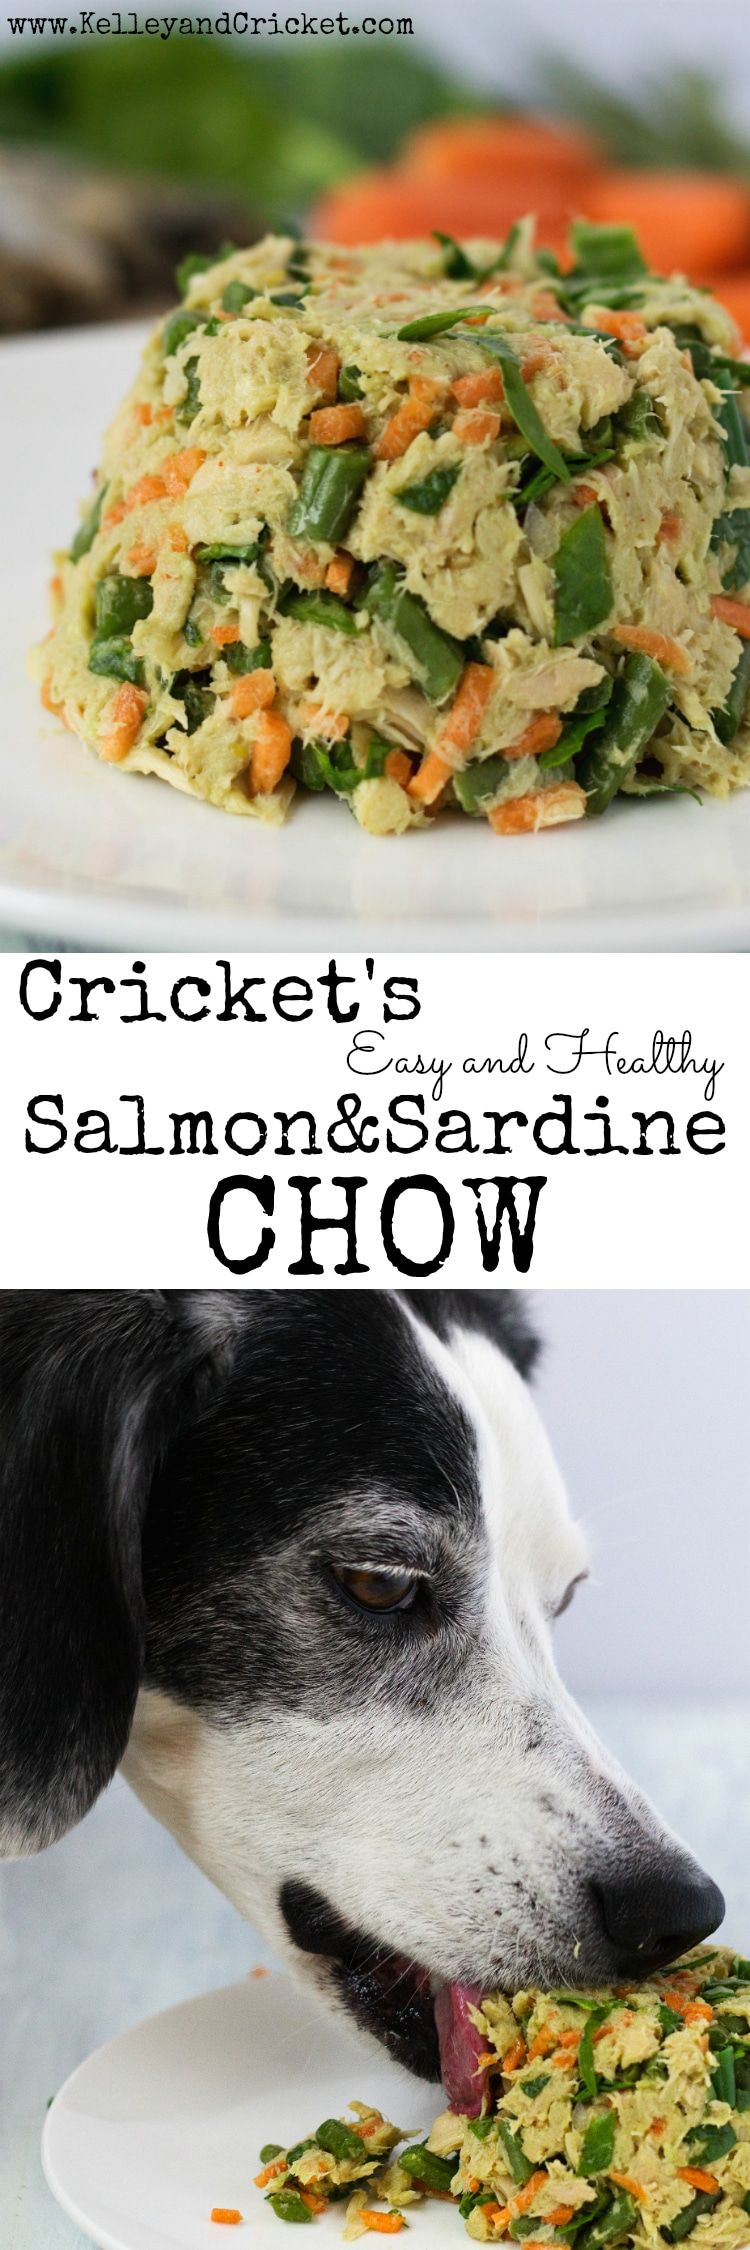 Crickets salmon and sardine chow is an easy no cooking